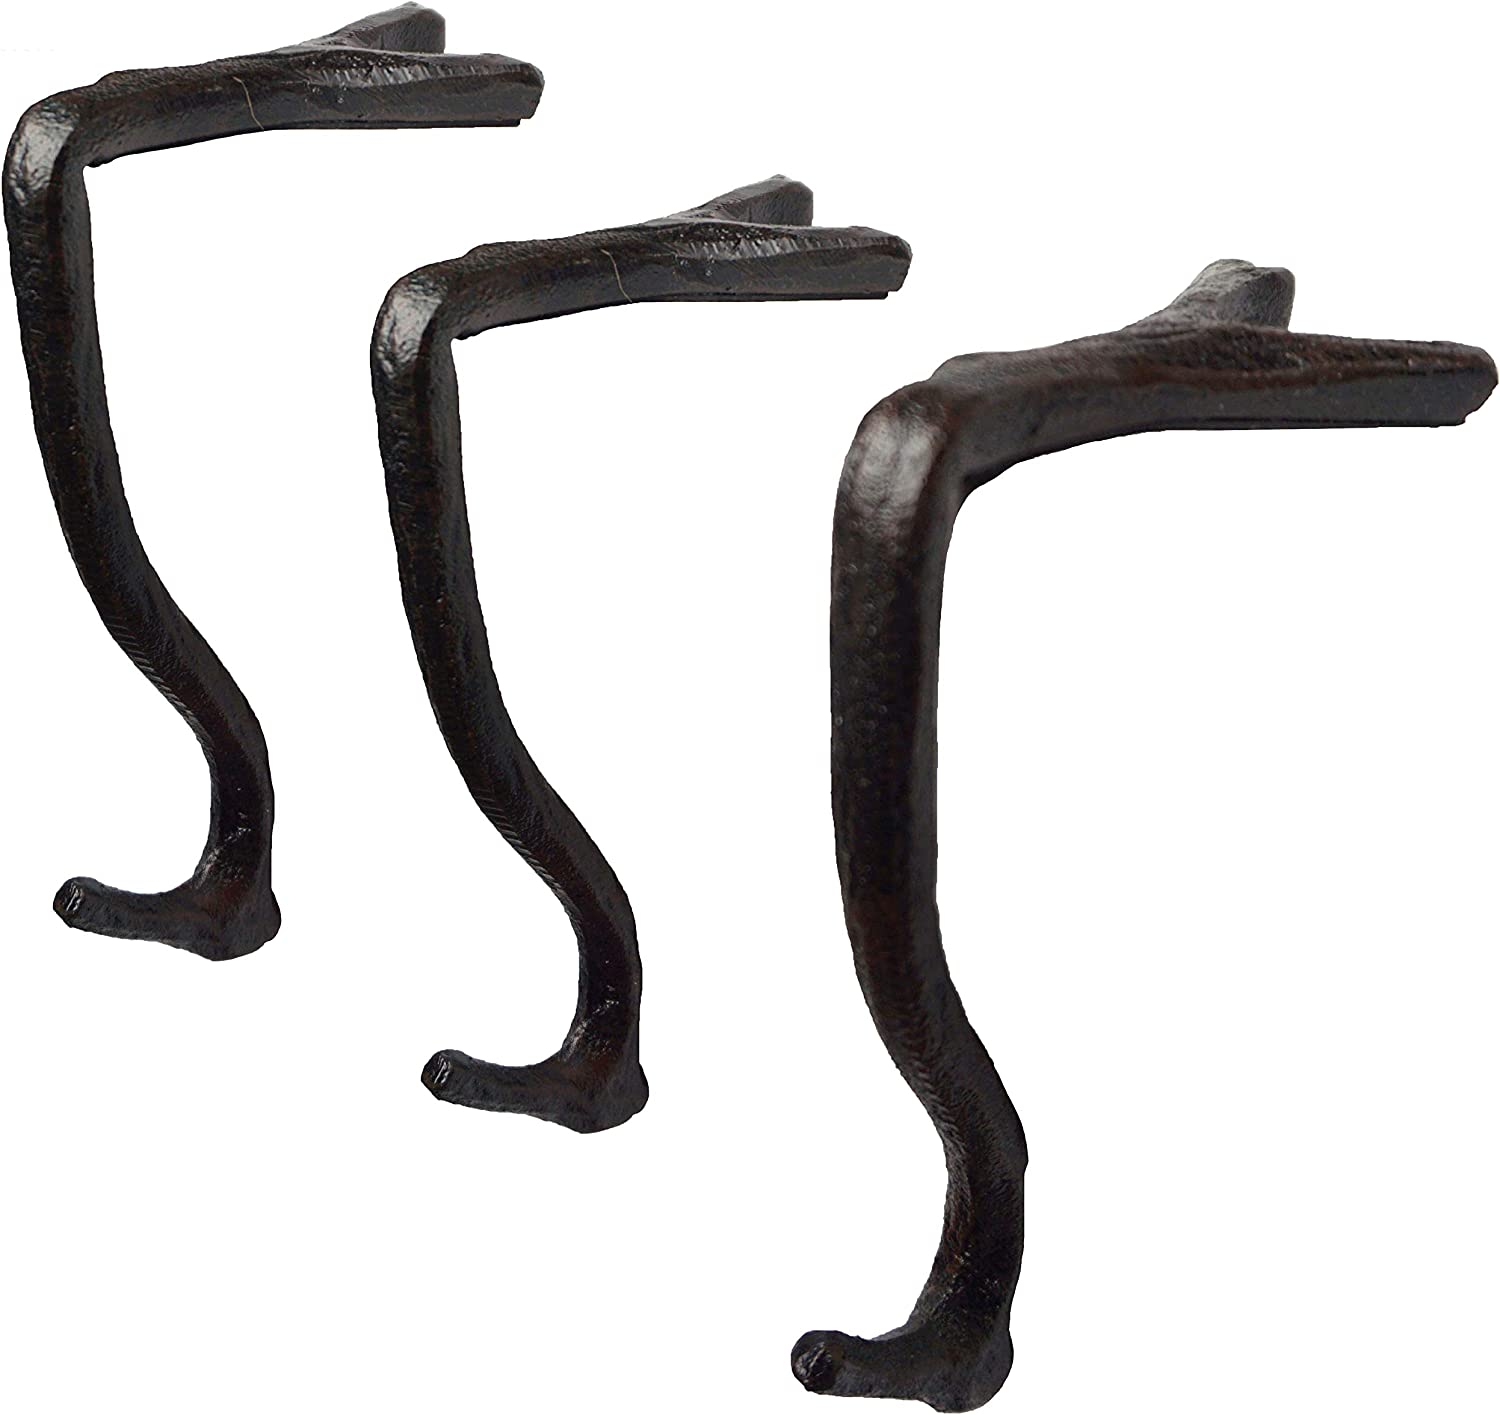 Lulu Decor,100% Cast Iron Branch Mantel Stocking Holder with Rubber Base for Better Grip, can Hold Upto 9 lbs, Natural Beautiful Shape, Simple Sophisticated Design (3 Pcs)